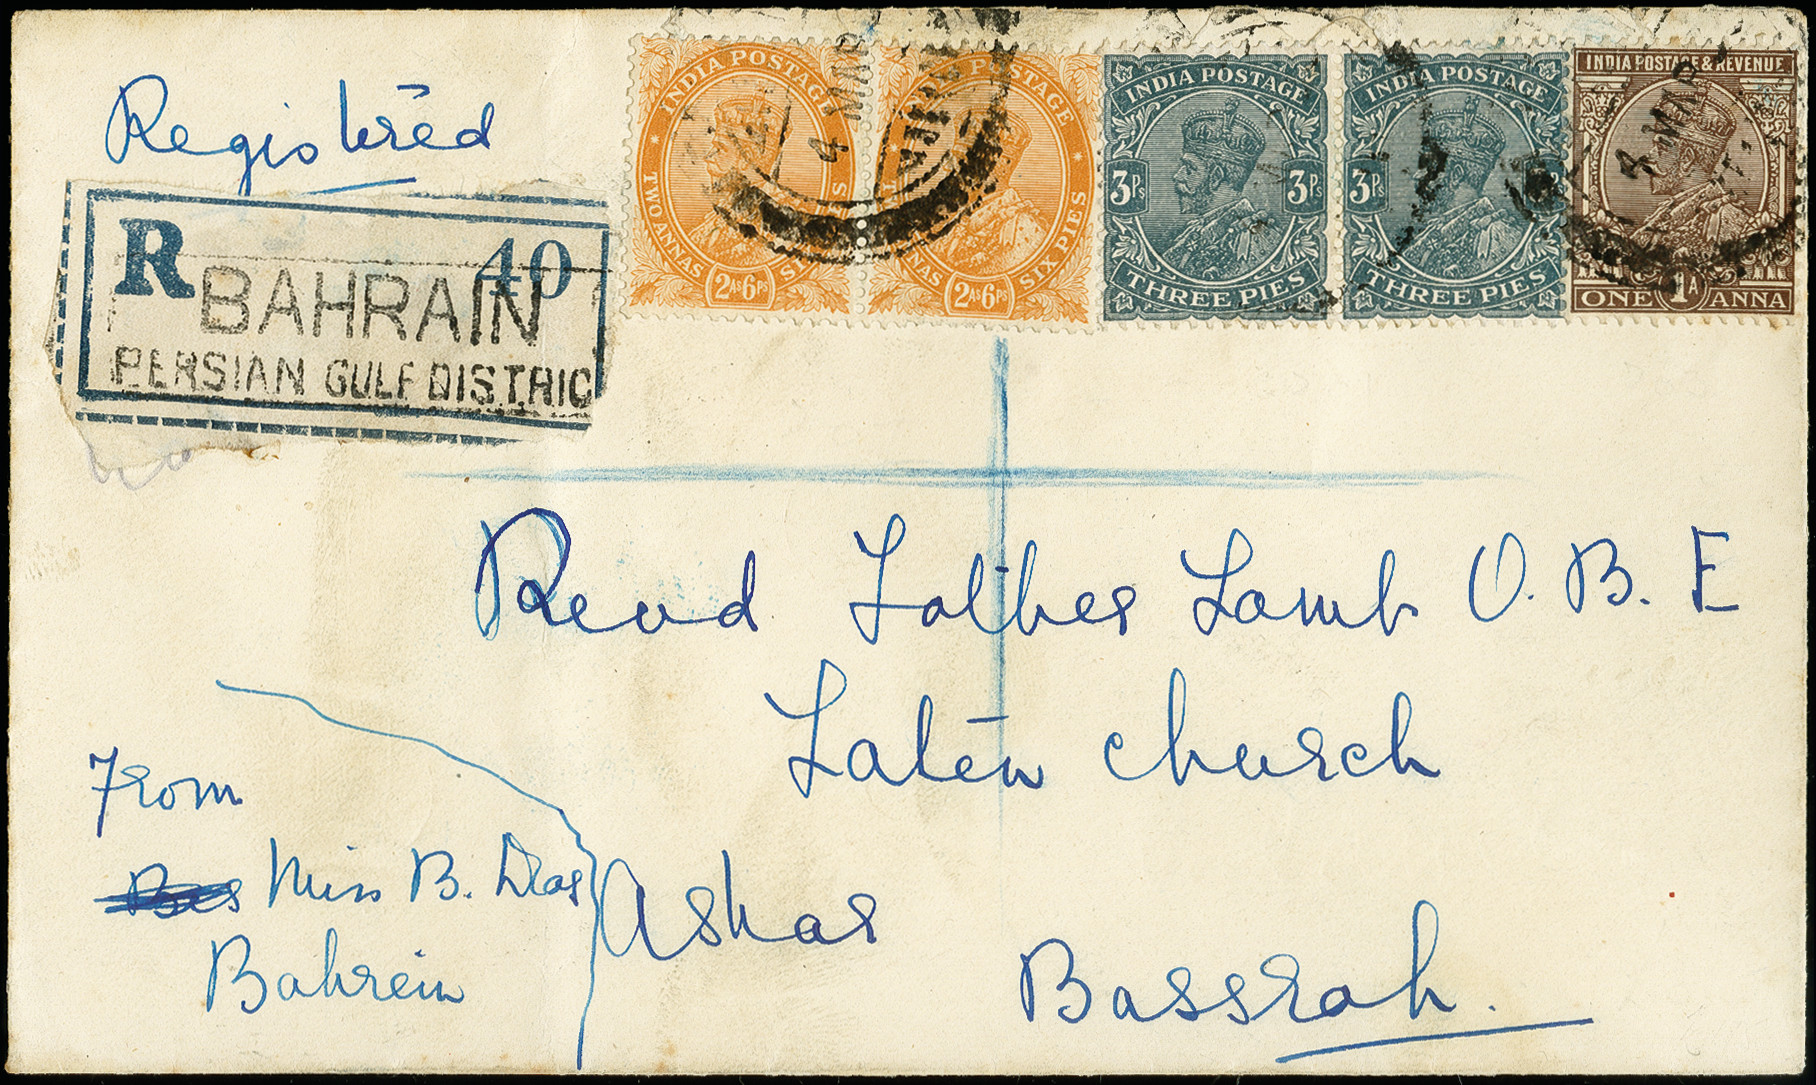 Lot 1037 - British Commonwealth Bahrain, India -  Heinrich Koehler Auktionen 373rd Heinrich Köhler auction - Day 2